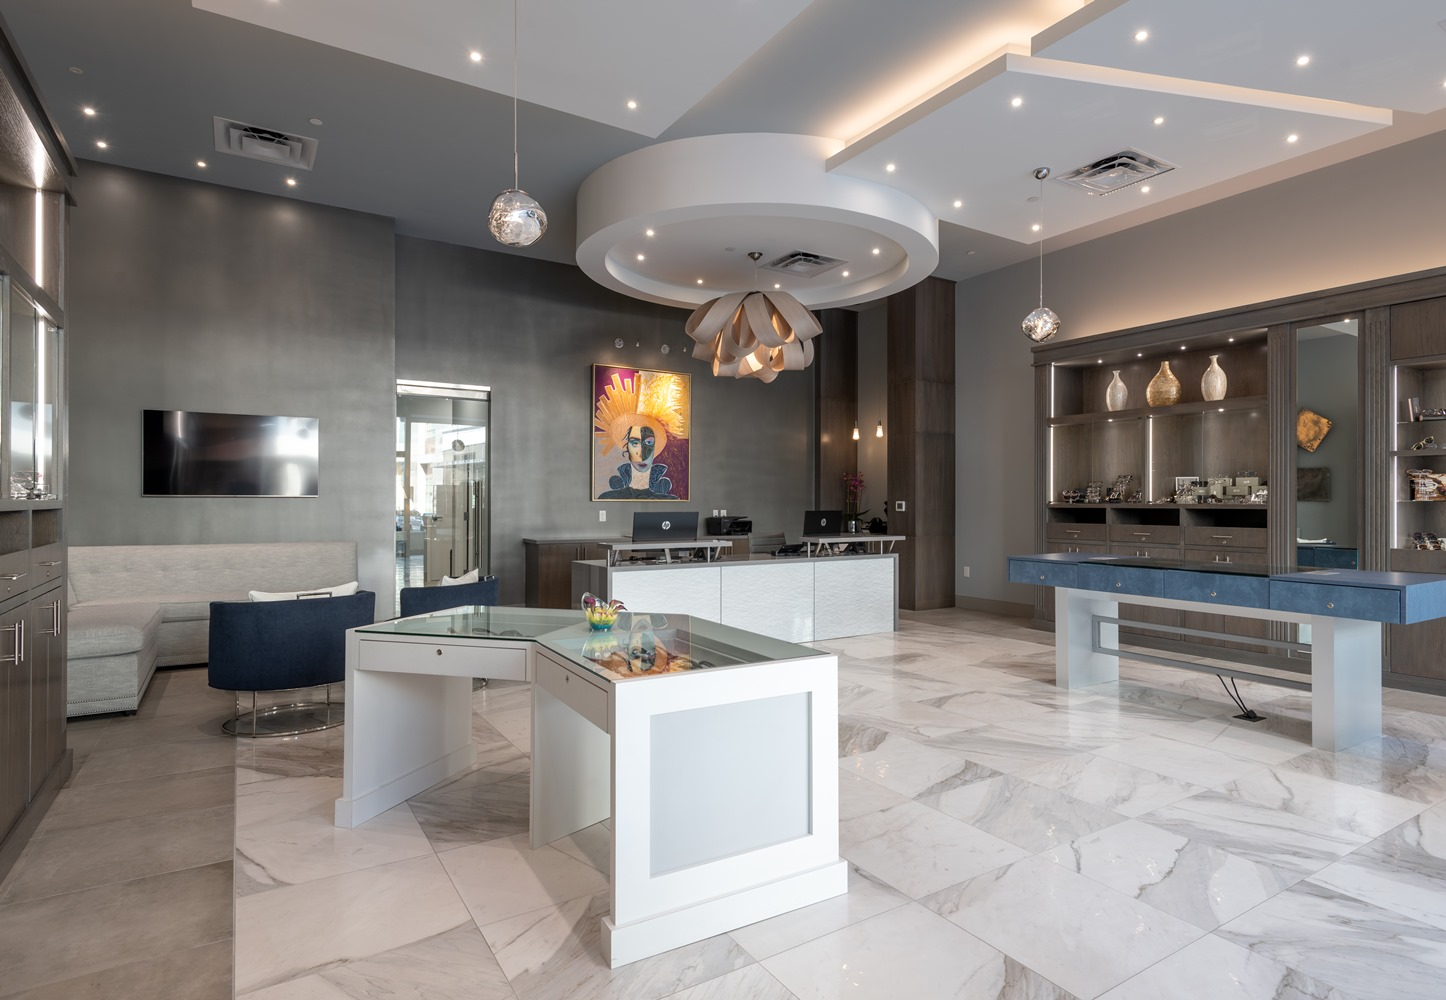 spectacles-legacy-west-plano-tx-showroom-furnishings